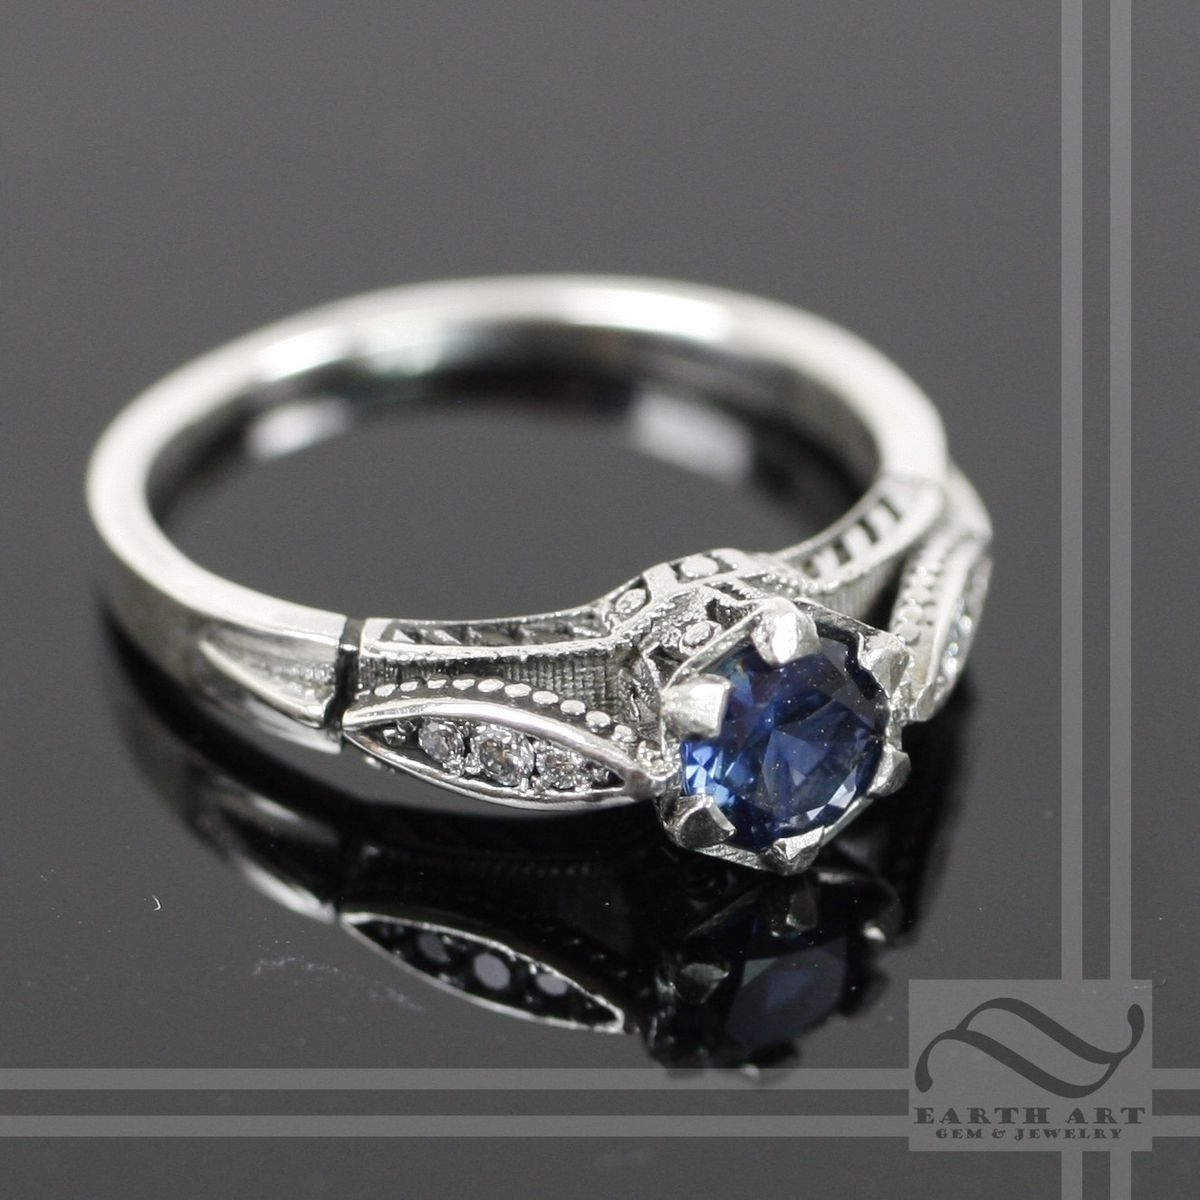 Buy A Hand Crafted Vintage Style Sapphire And Diamond Ring, Made To Within Most Recently Released Vintage Style Sapphire Engagement Rings (Gallery 11 of 15)